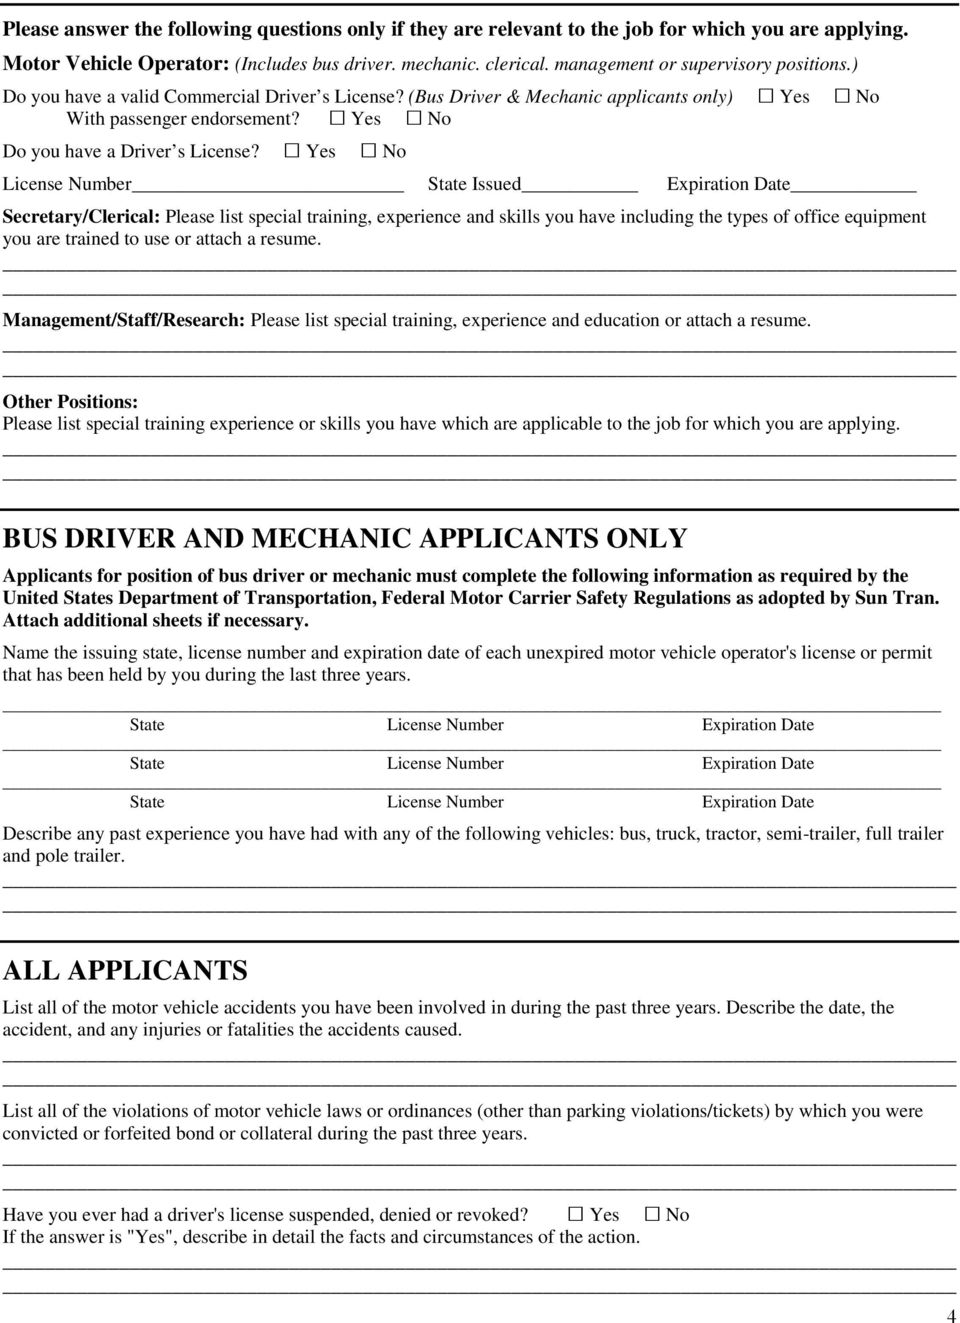 License Number State Issued Expiration Date Secretary/Clerical: Please list special training, experience and skills you have including the types of office equipment you are trained to use or attach a